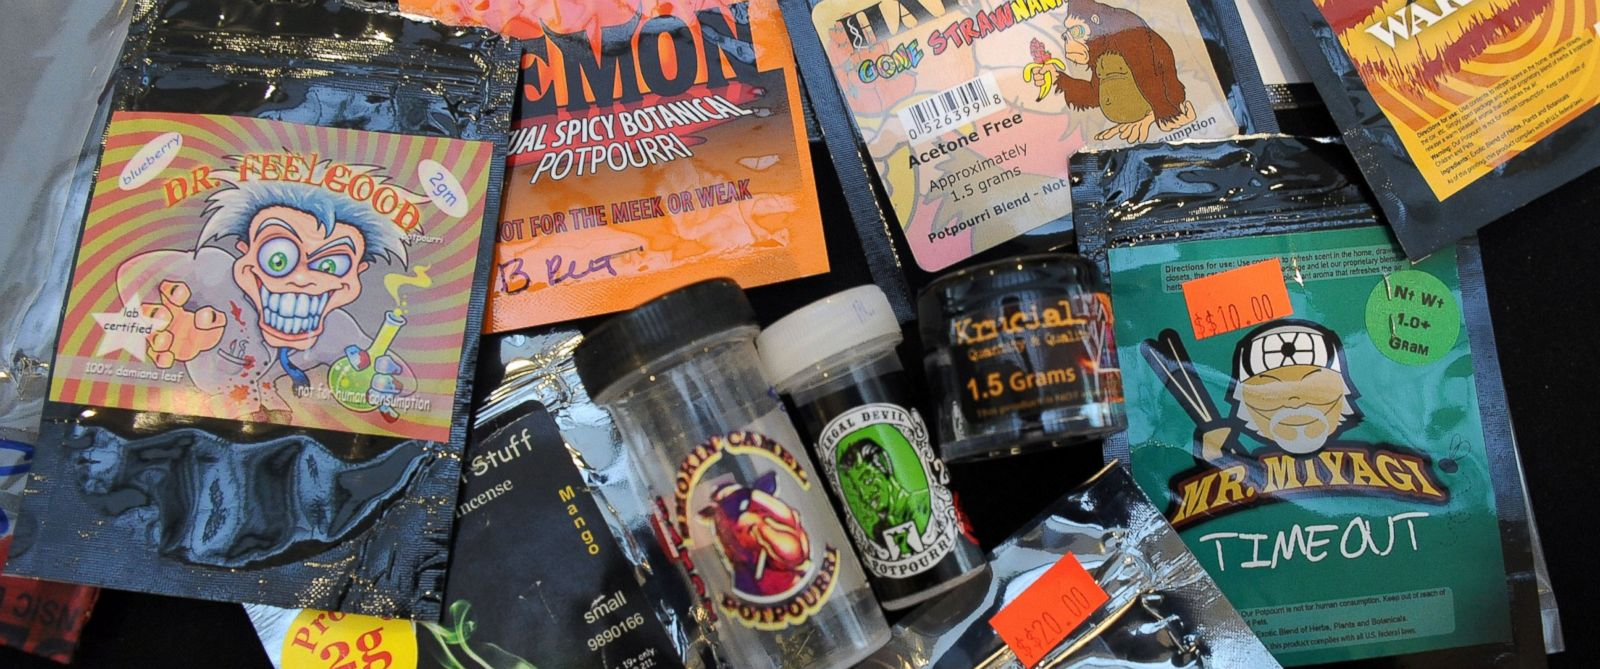 synthetic drugs of abuse There are different types of treatment for drug abuse but the best  prescription drugs, including opioids drug abuse also plays a role in  synthetic cathinones.